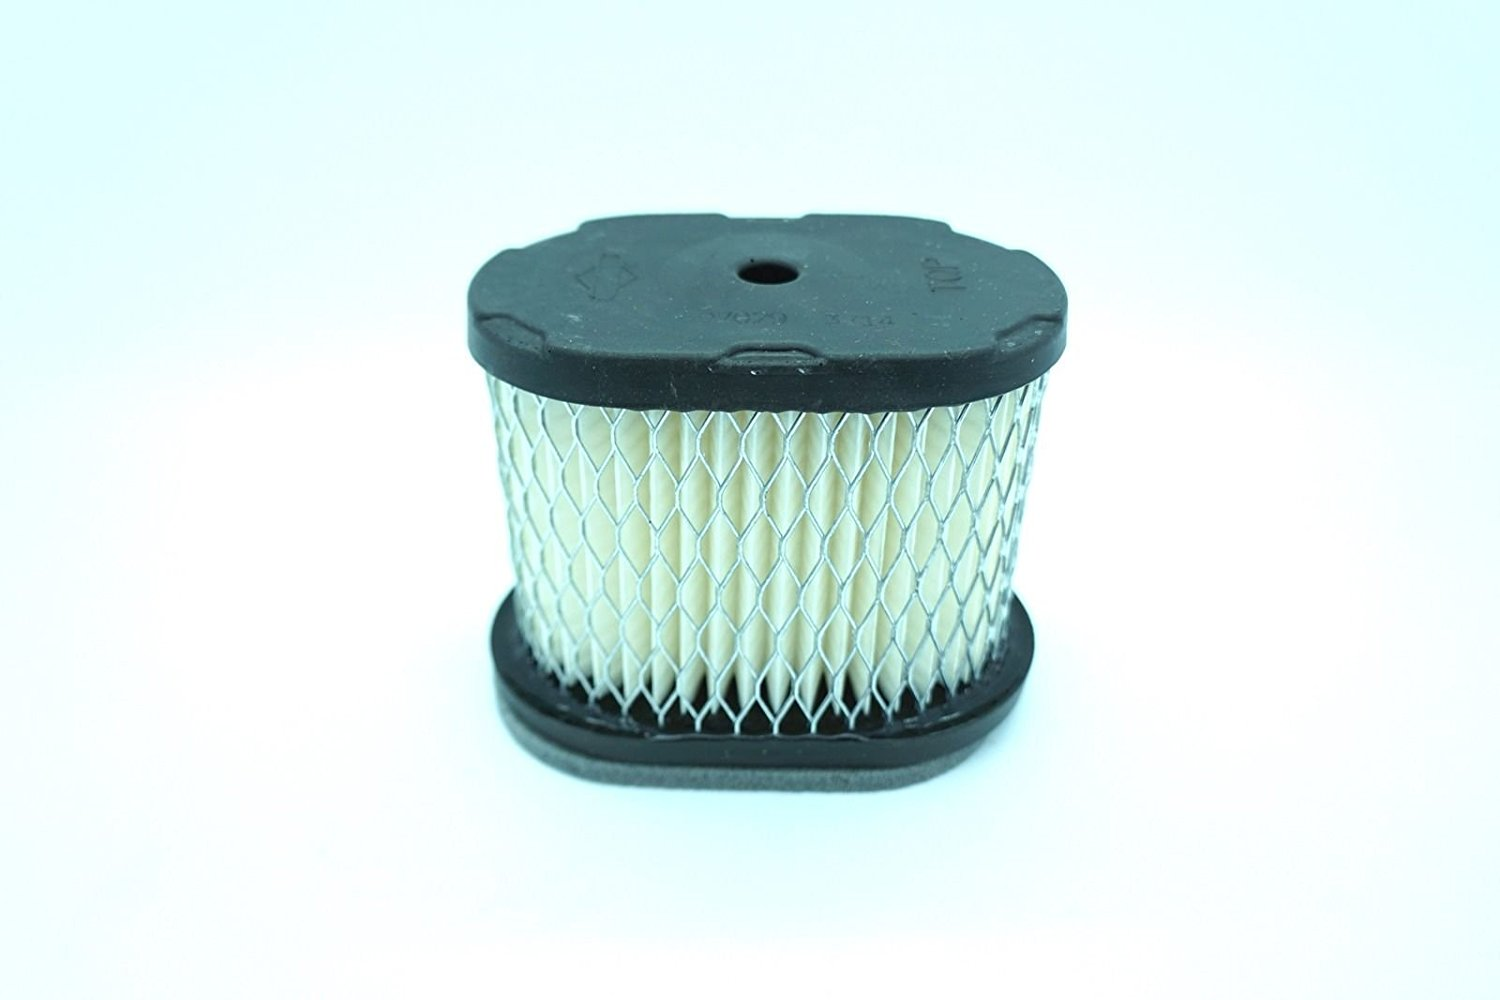 GENUINE OEM BRIGGS & STRATTON PART # 697029 AIR FILTER; BRIGGS OHV AIR FILTER /&supplier-outdoorpowerequipment